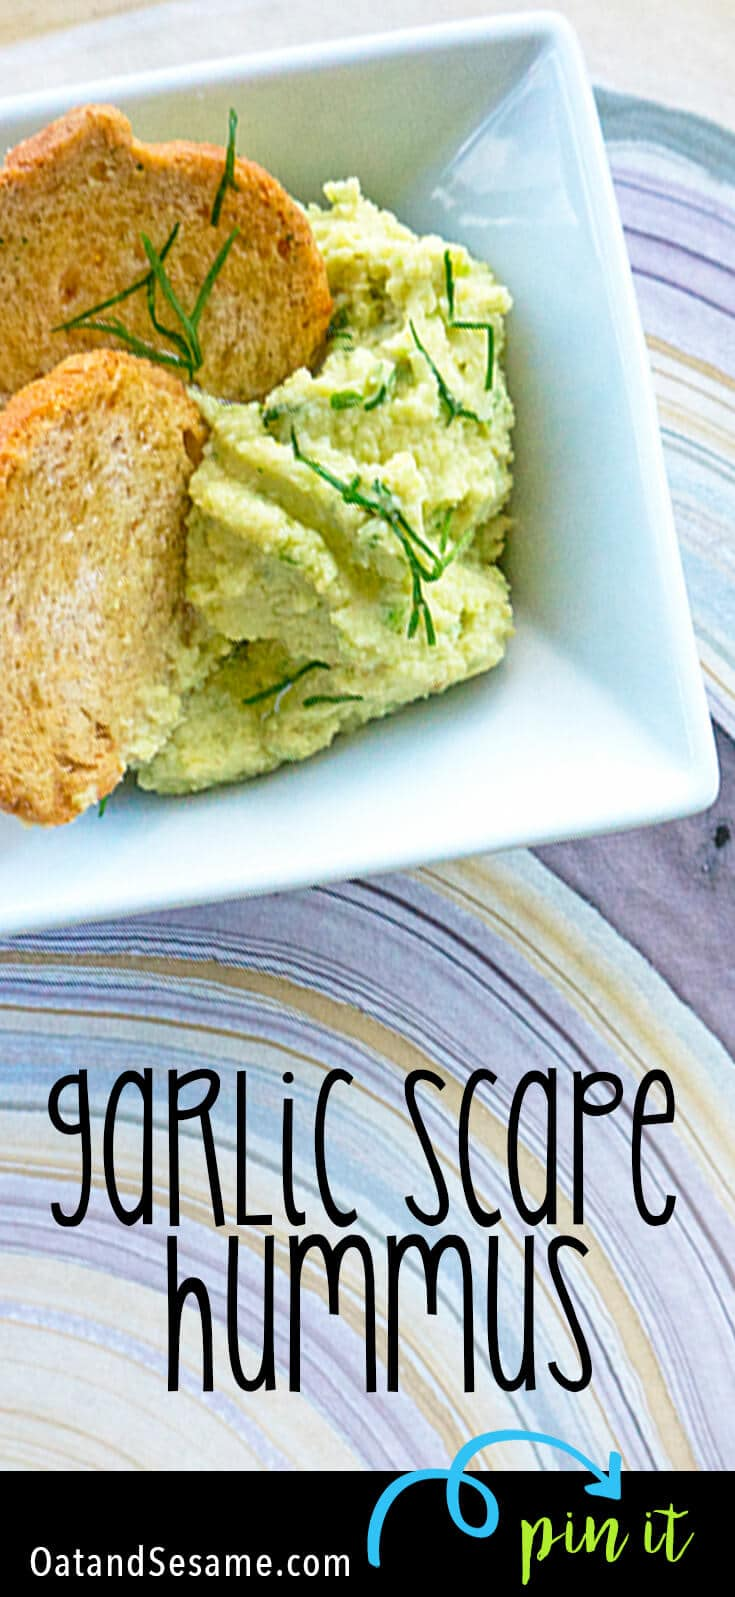 Hummus made with Garlic Scapes